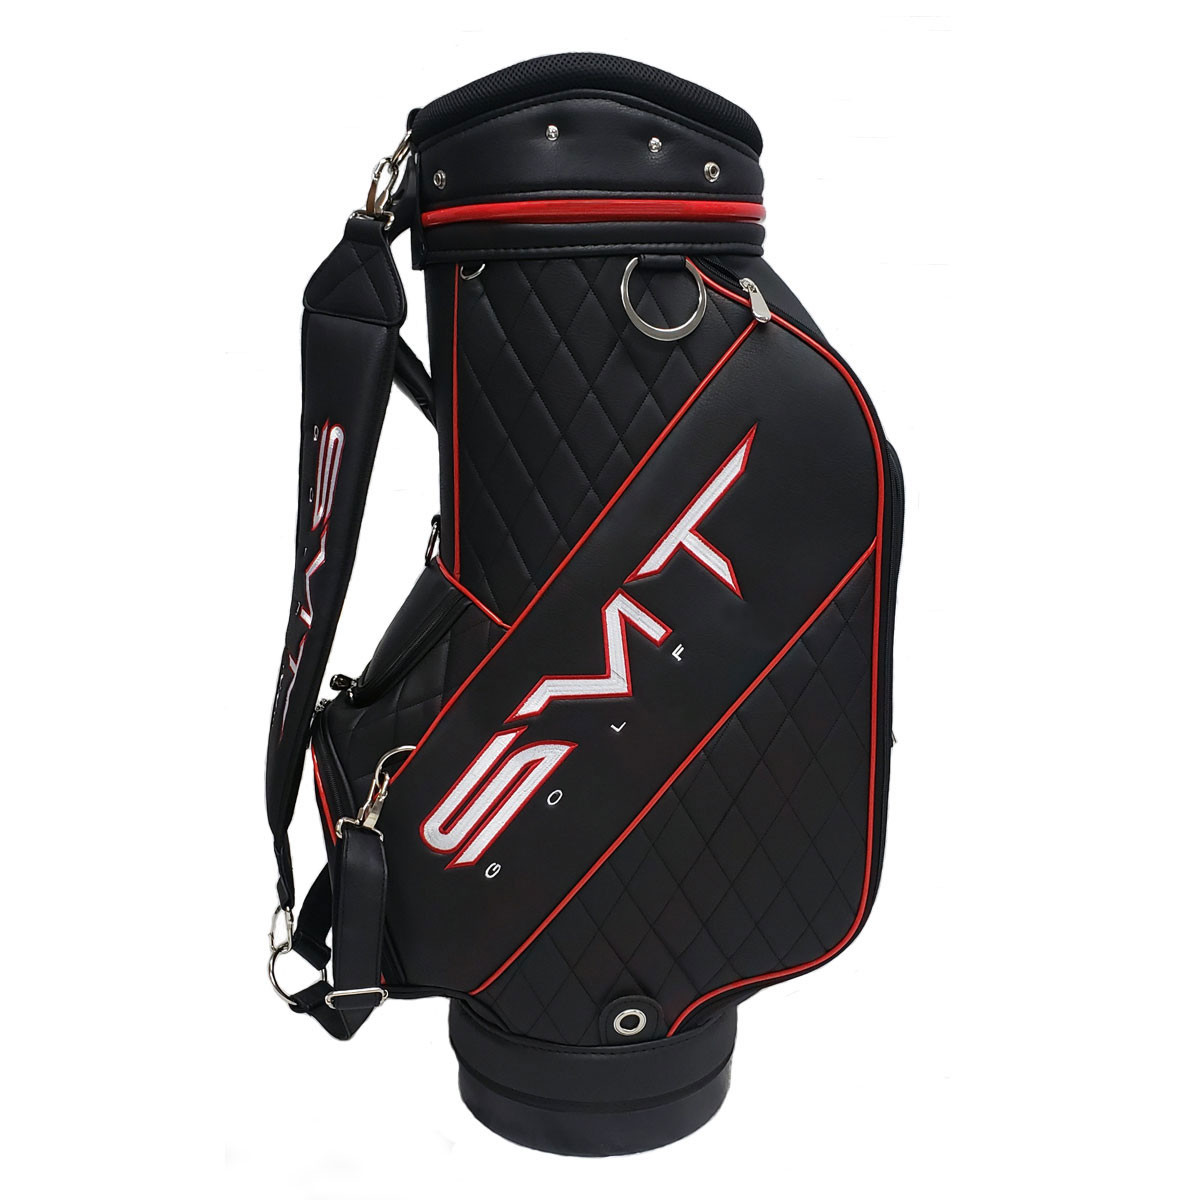 Smt Golf Staff Bag